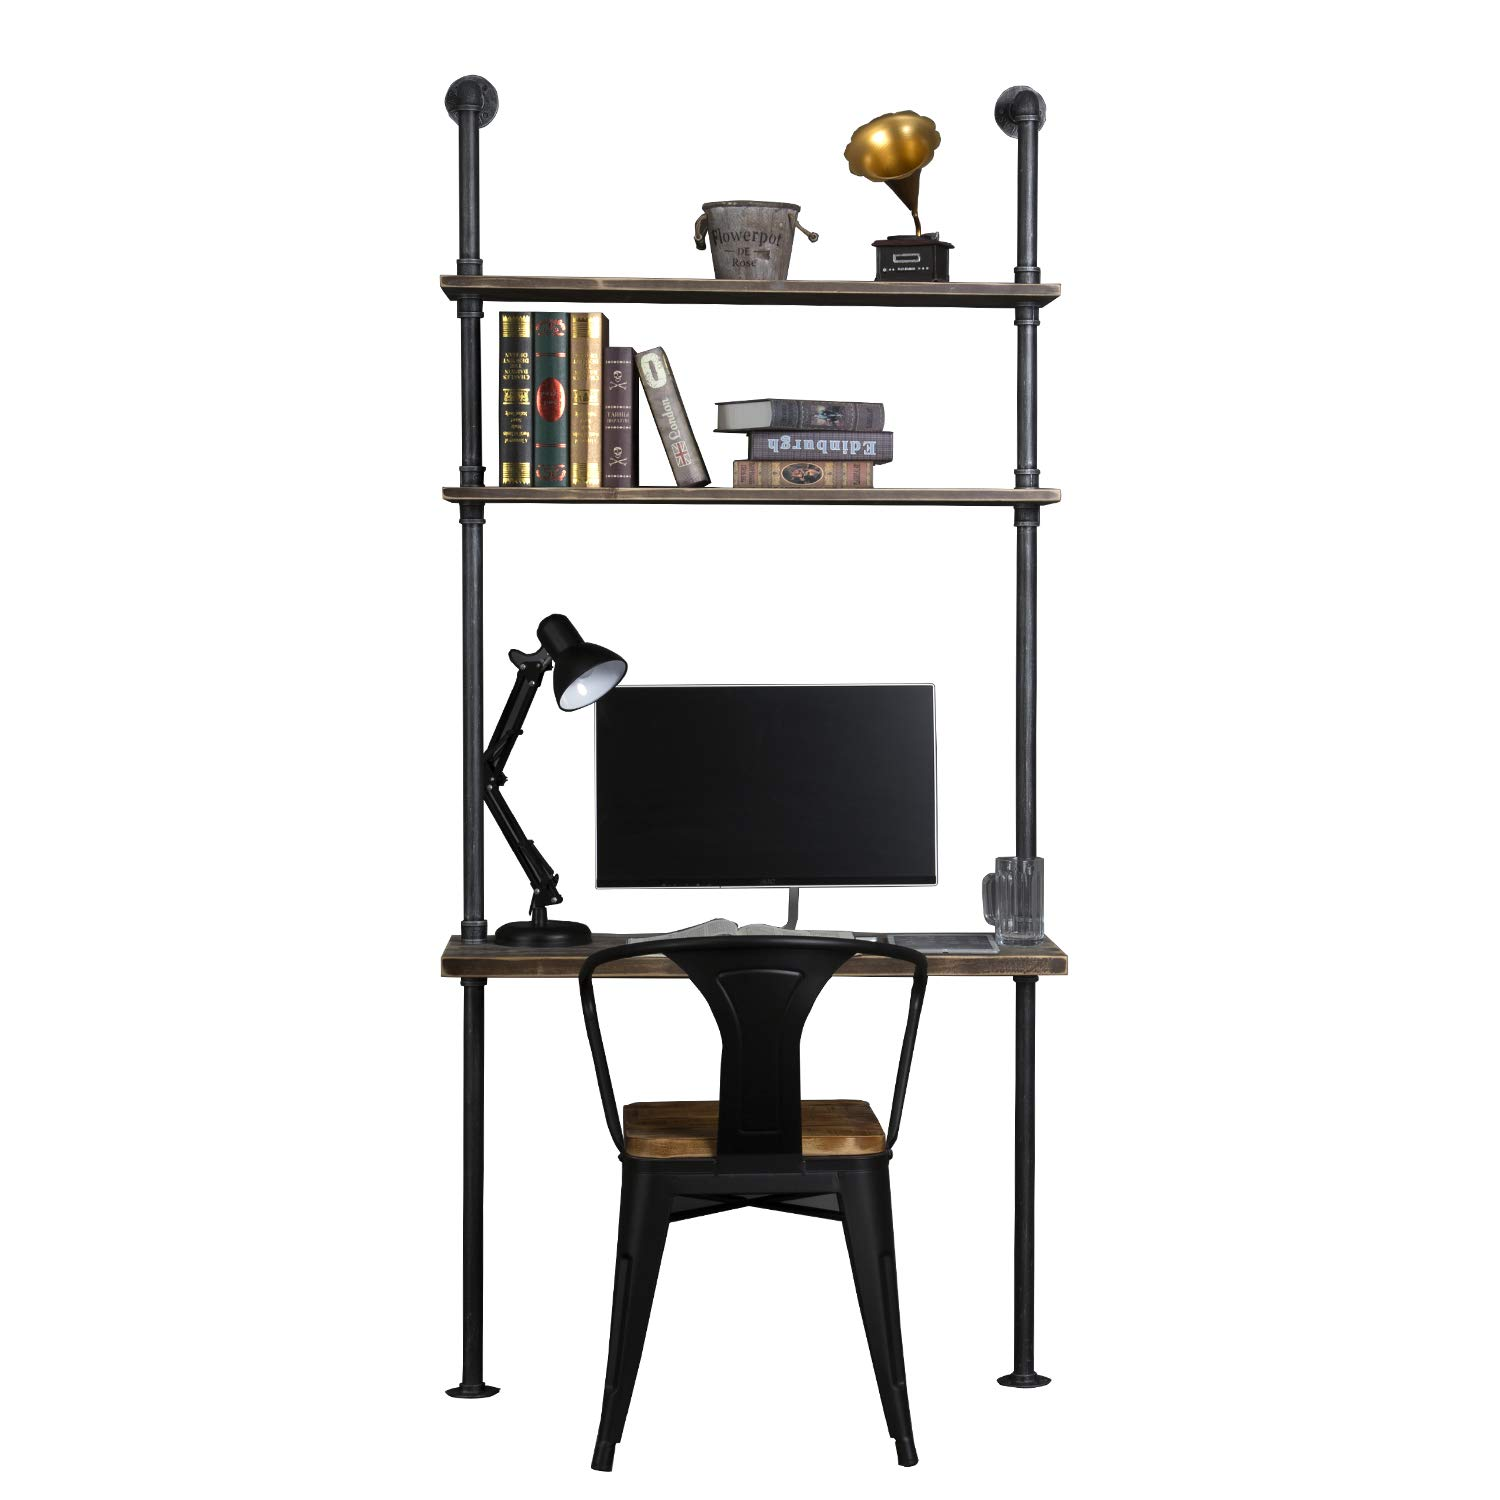 Industrial Style Laptop Desk Solid Wood Computer Desk Storage Table with Shelves Wall Shelf Bookshelf Floating Shelves for Home Office by WGX Design For You